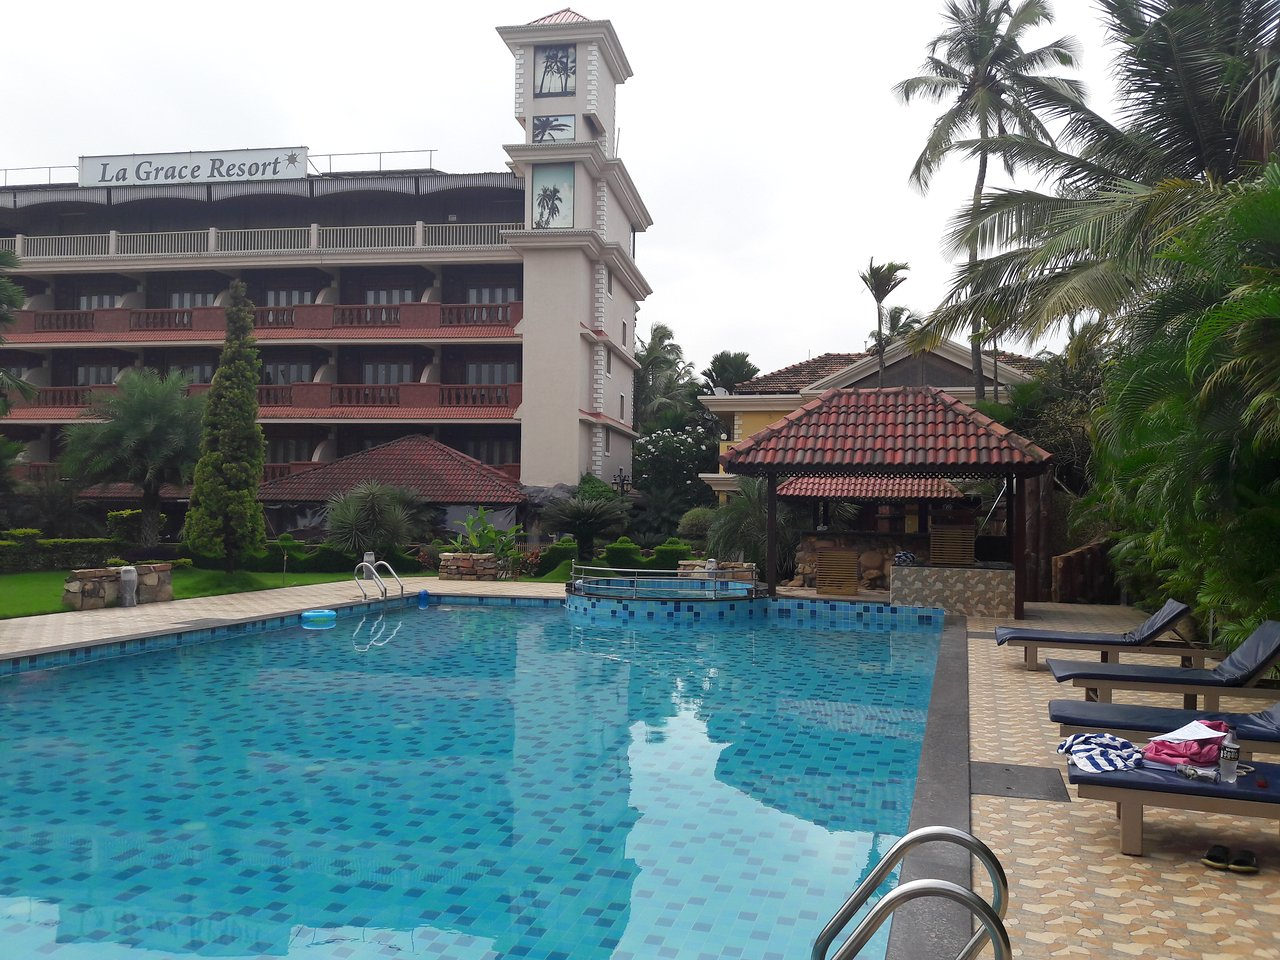 La Grace Resort (India Goa): description and reviews of tourists 93